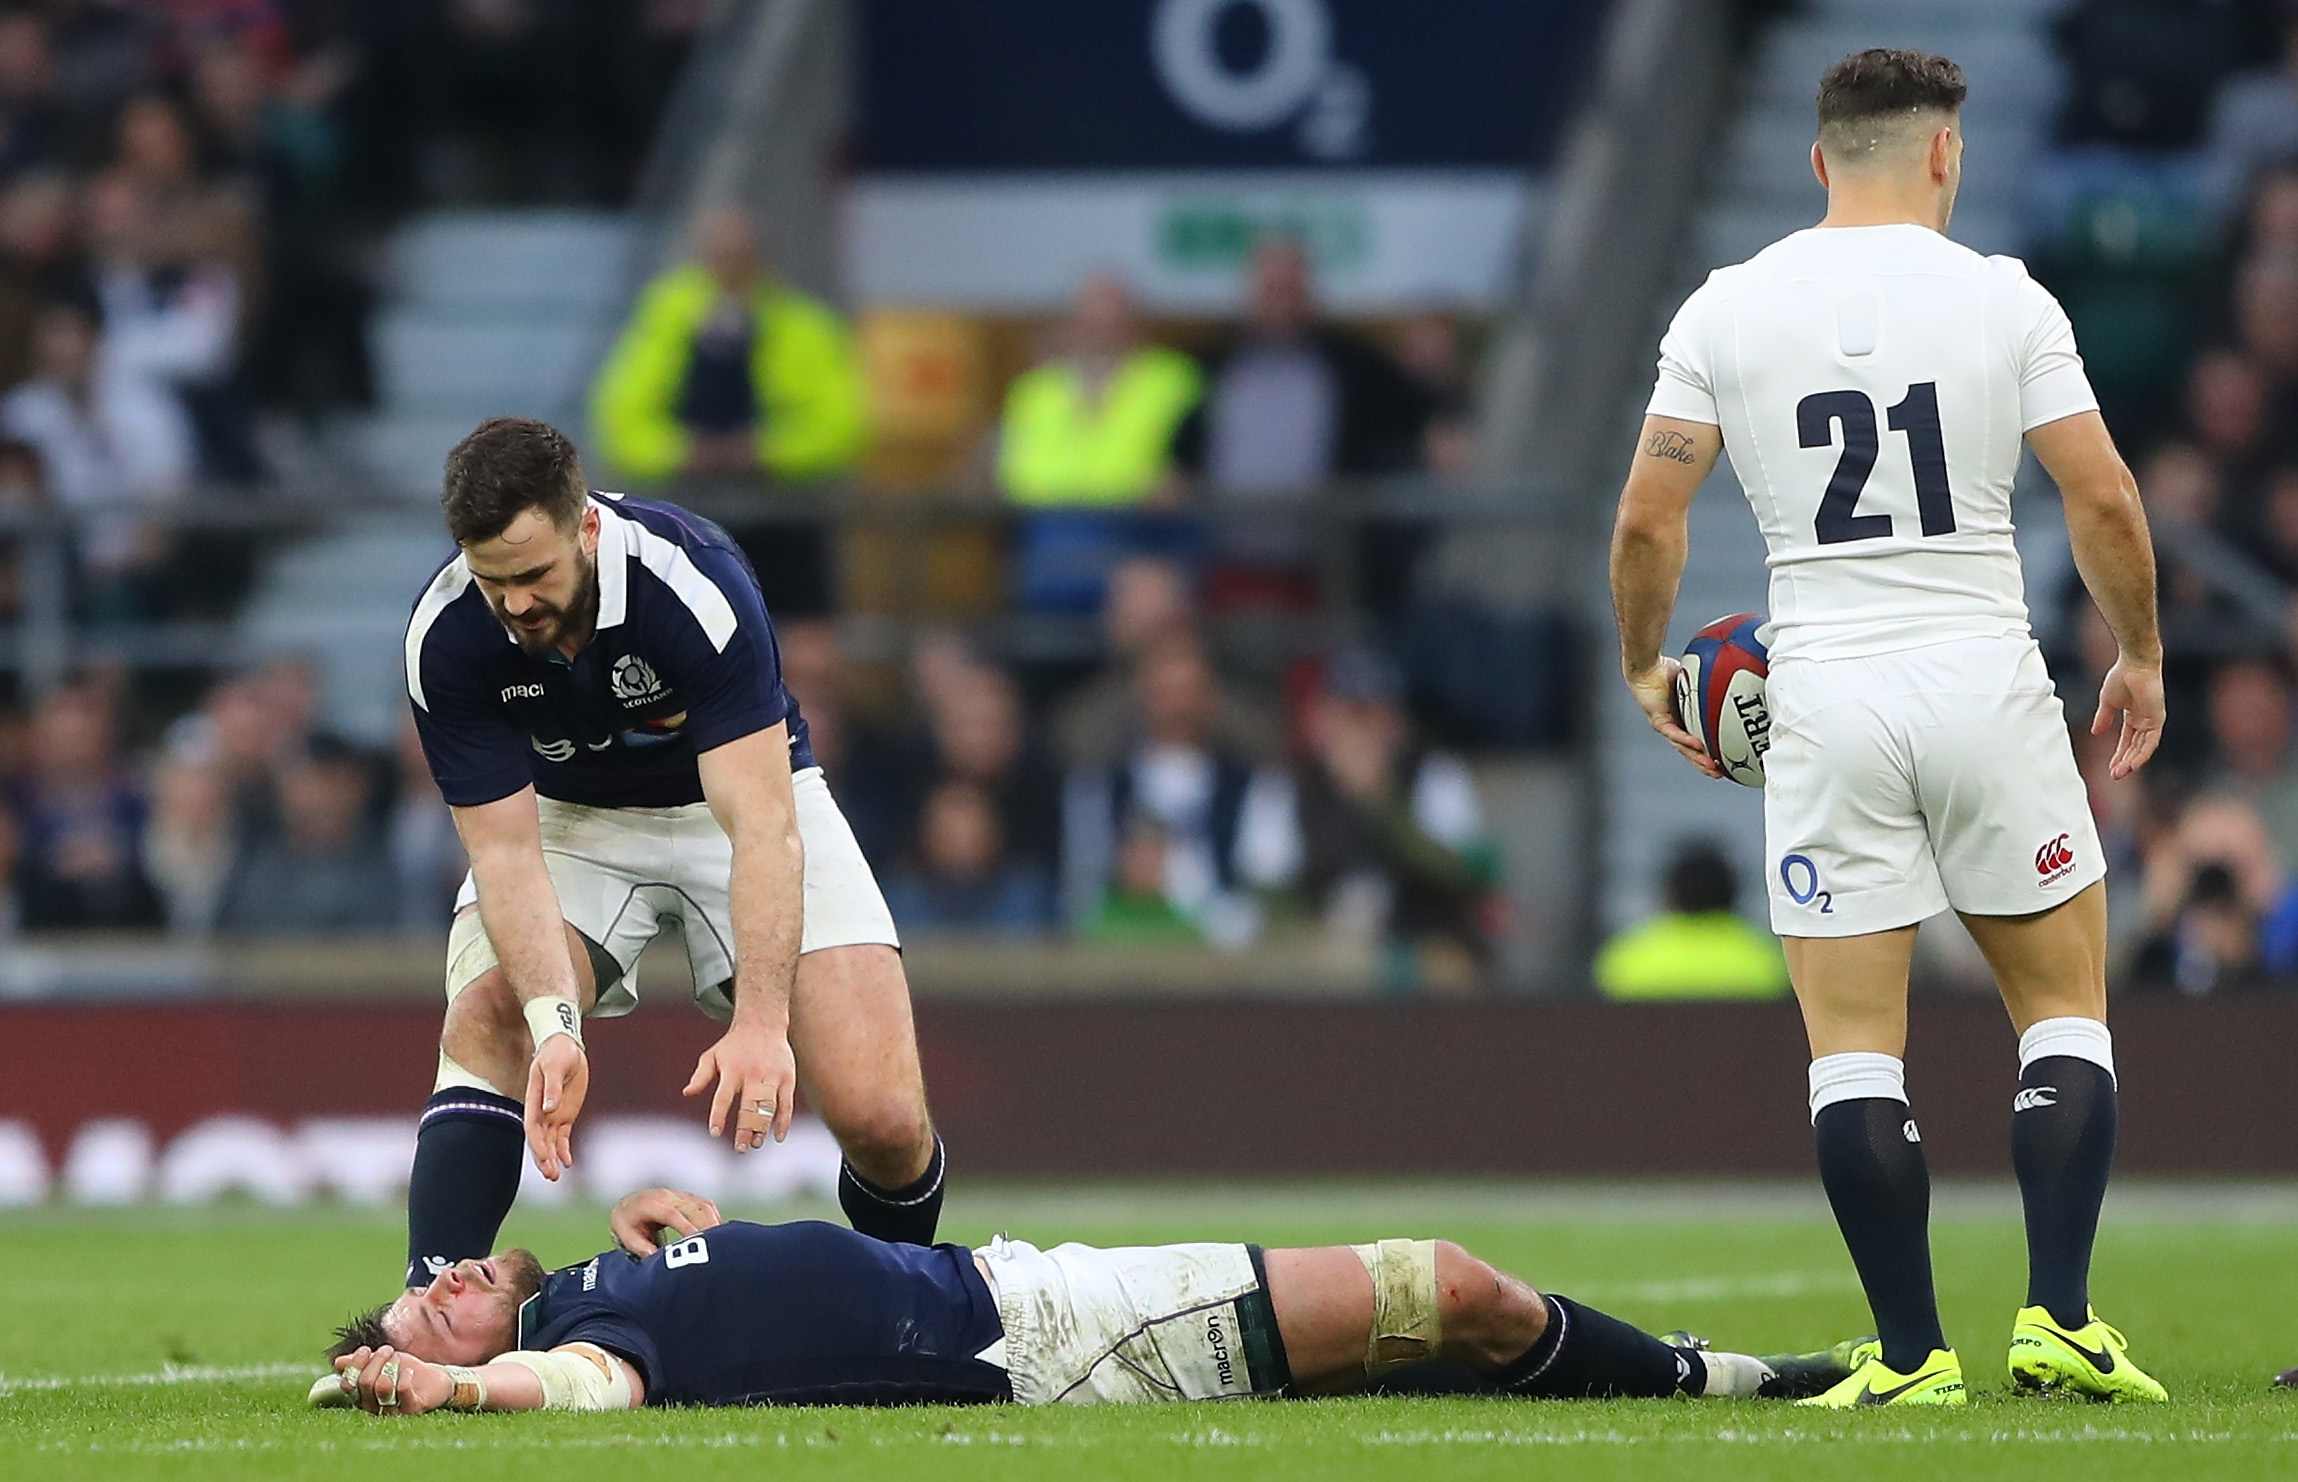 Ryan Wilson was one of the Scots injured in Saturday's Calcutta Cup loss to England.